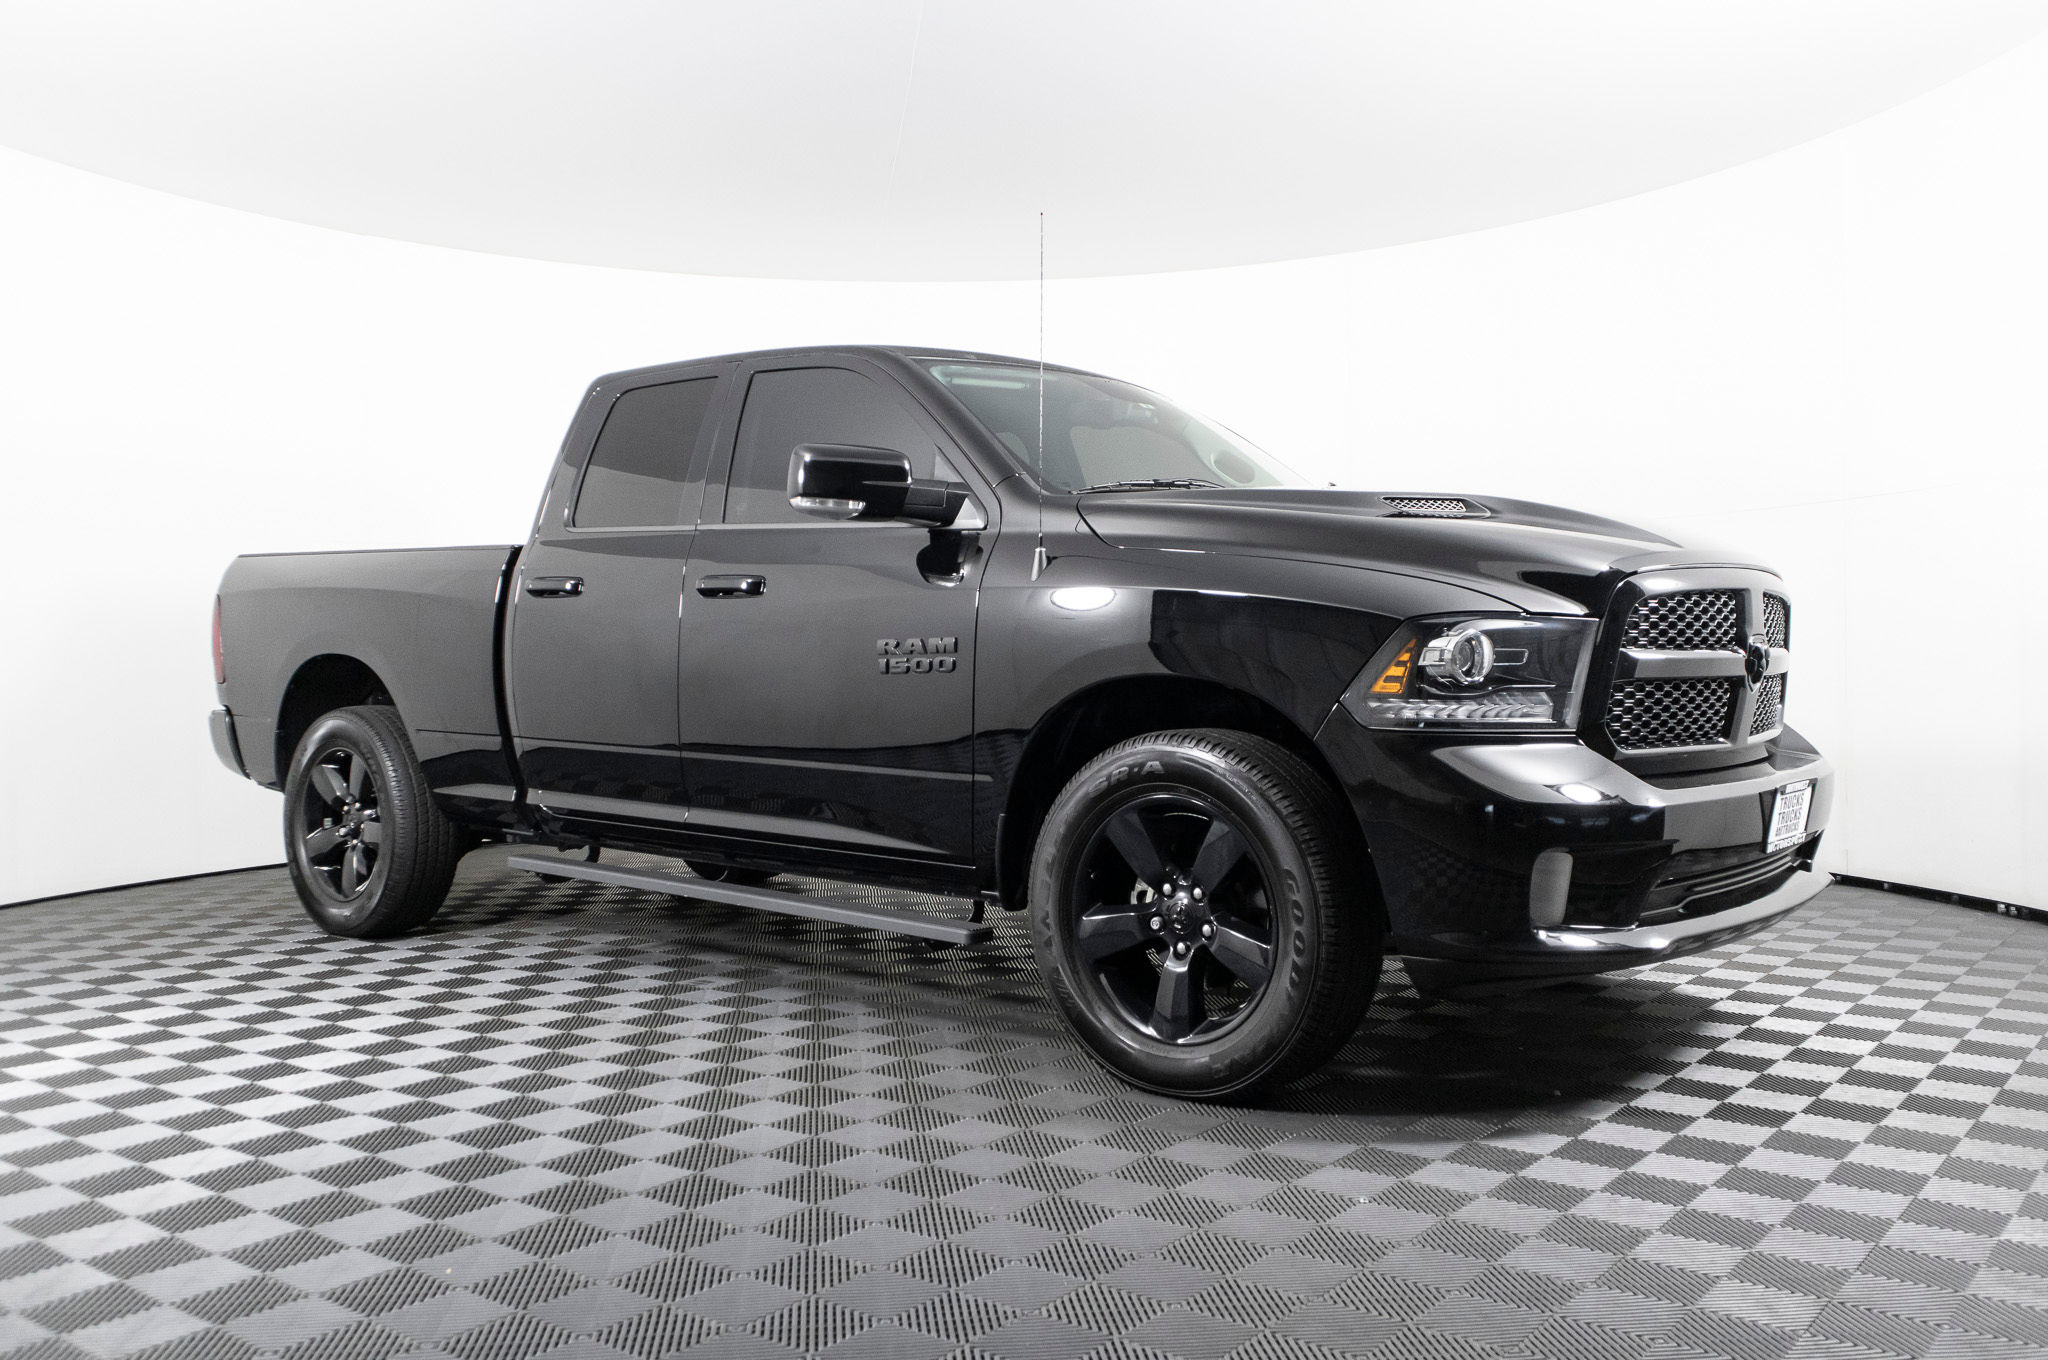 Used 2014 Dodge Ram 1500 Sport 4x4 Truck For Sale Northwest Motorsport